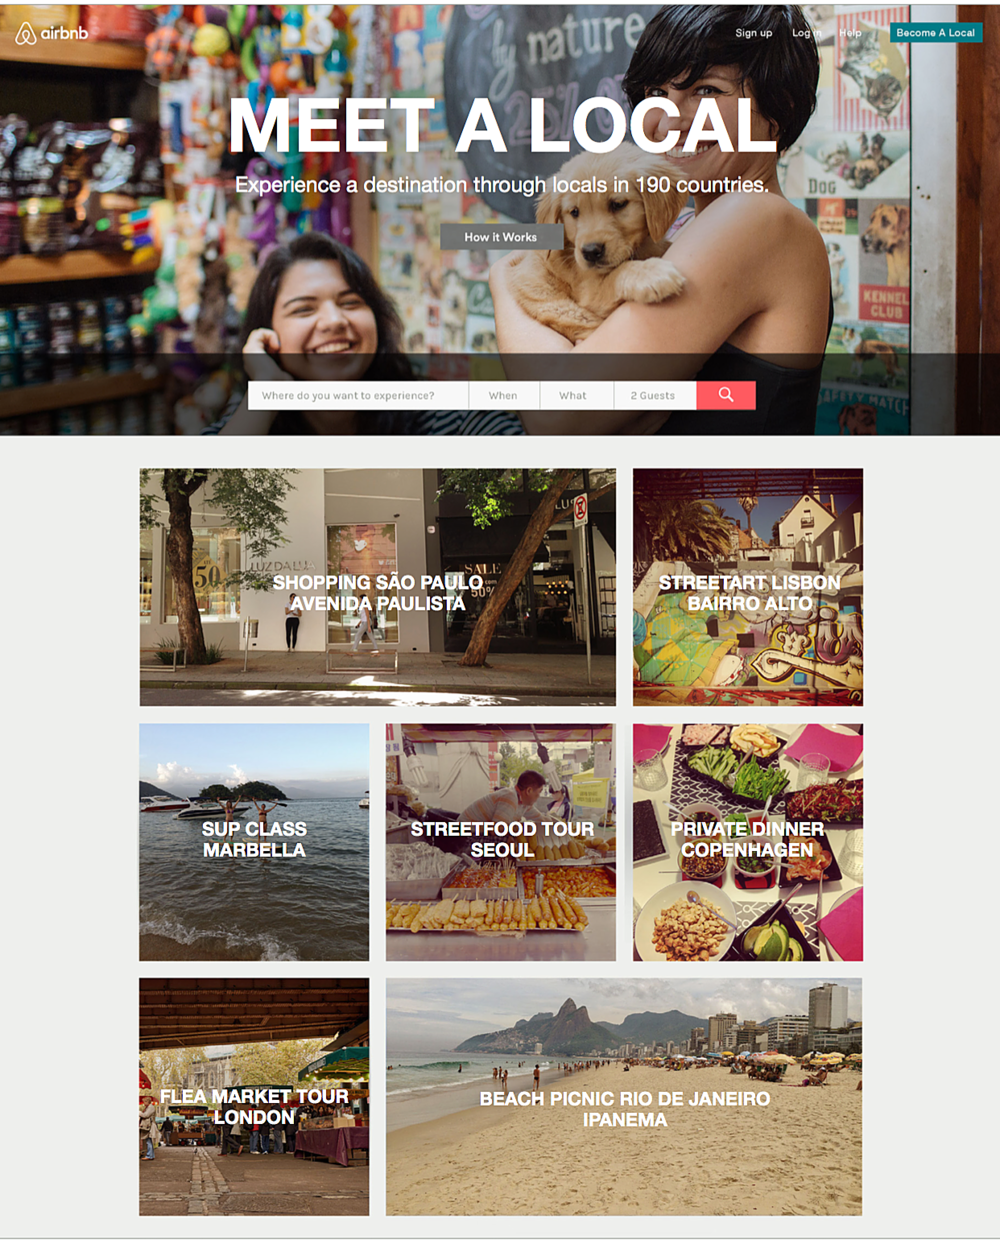 meet-a-local---x----1242-1550x---.png